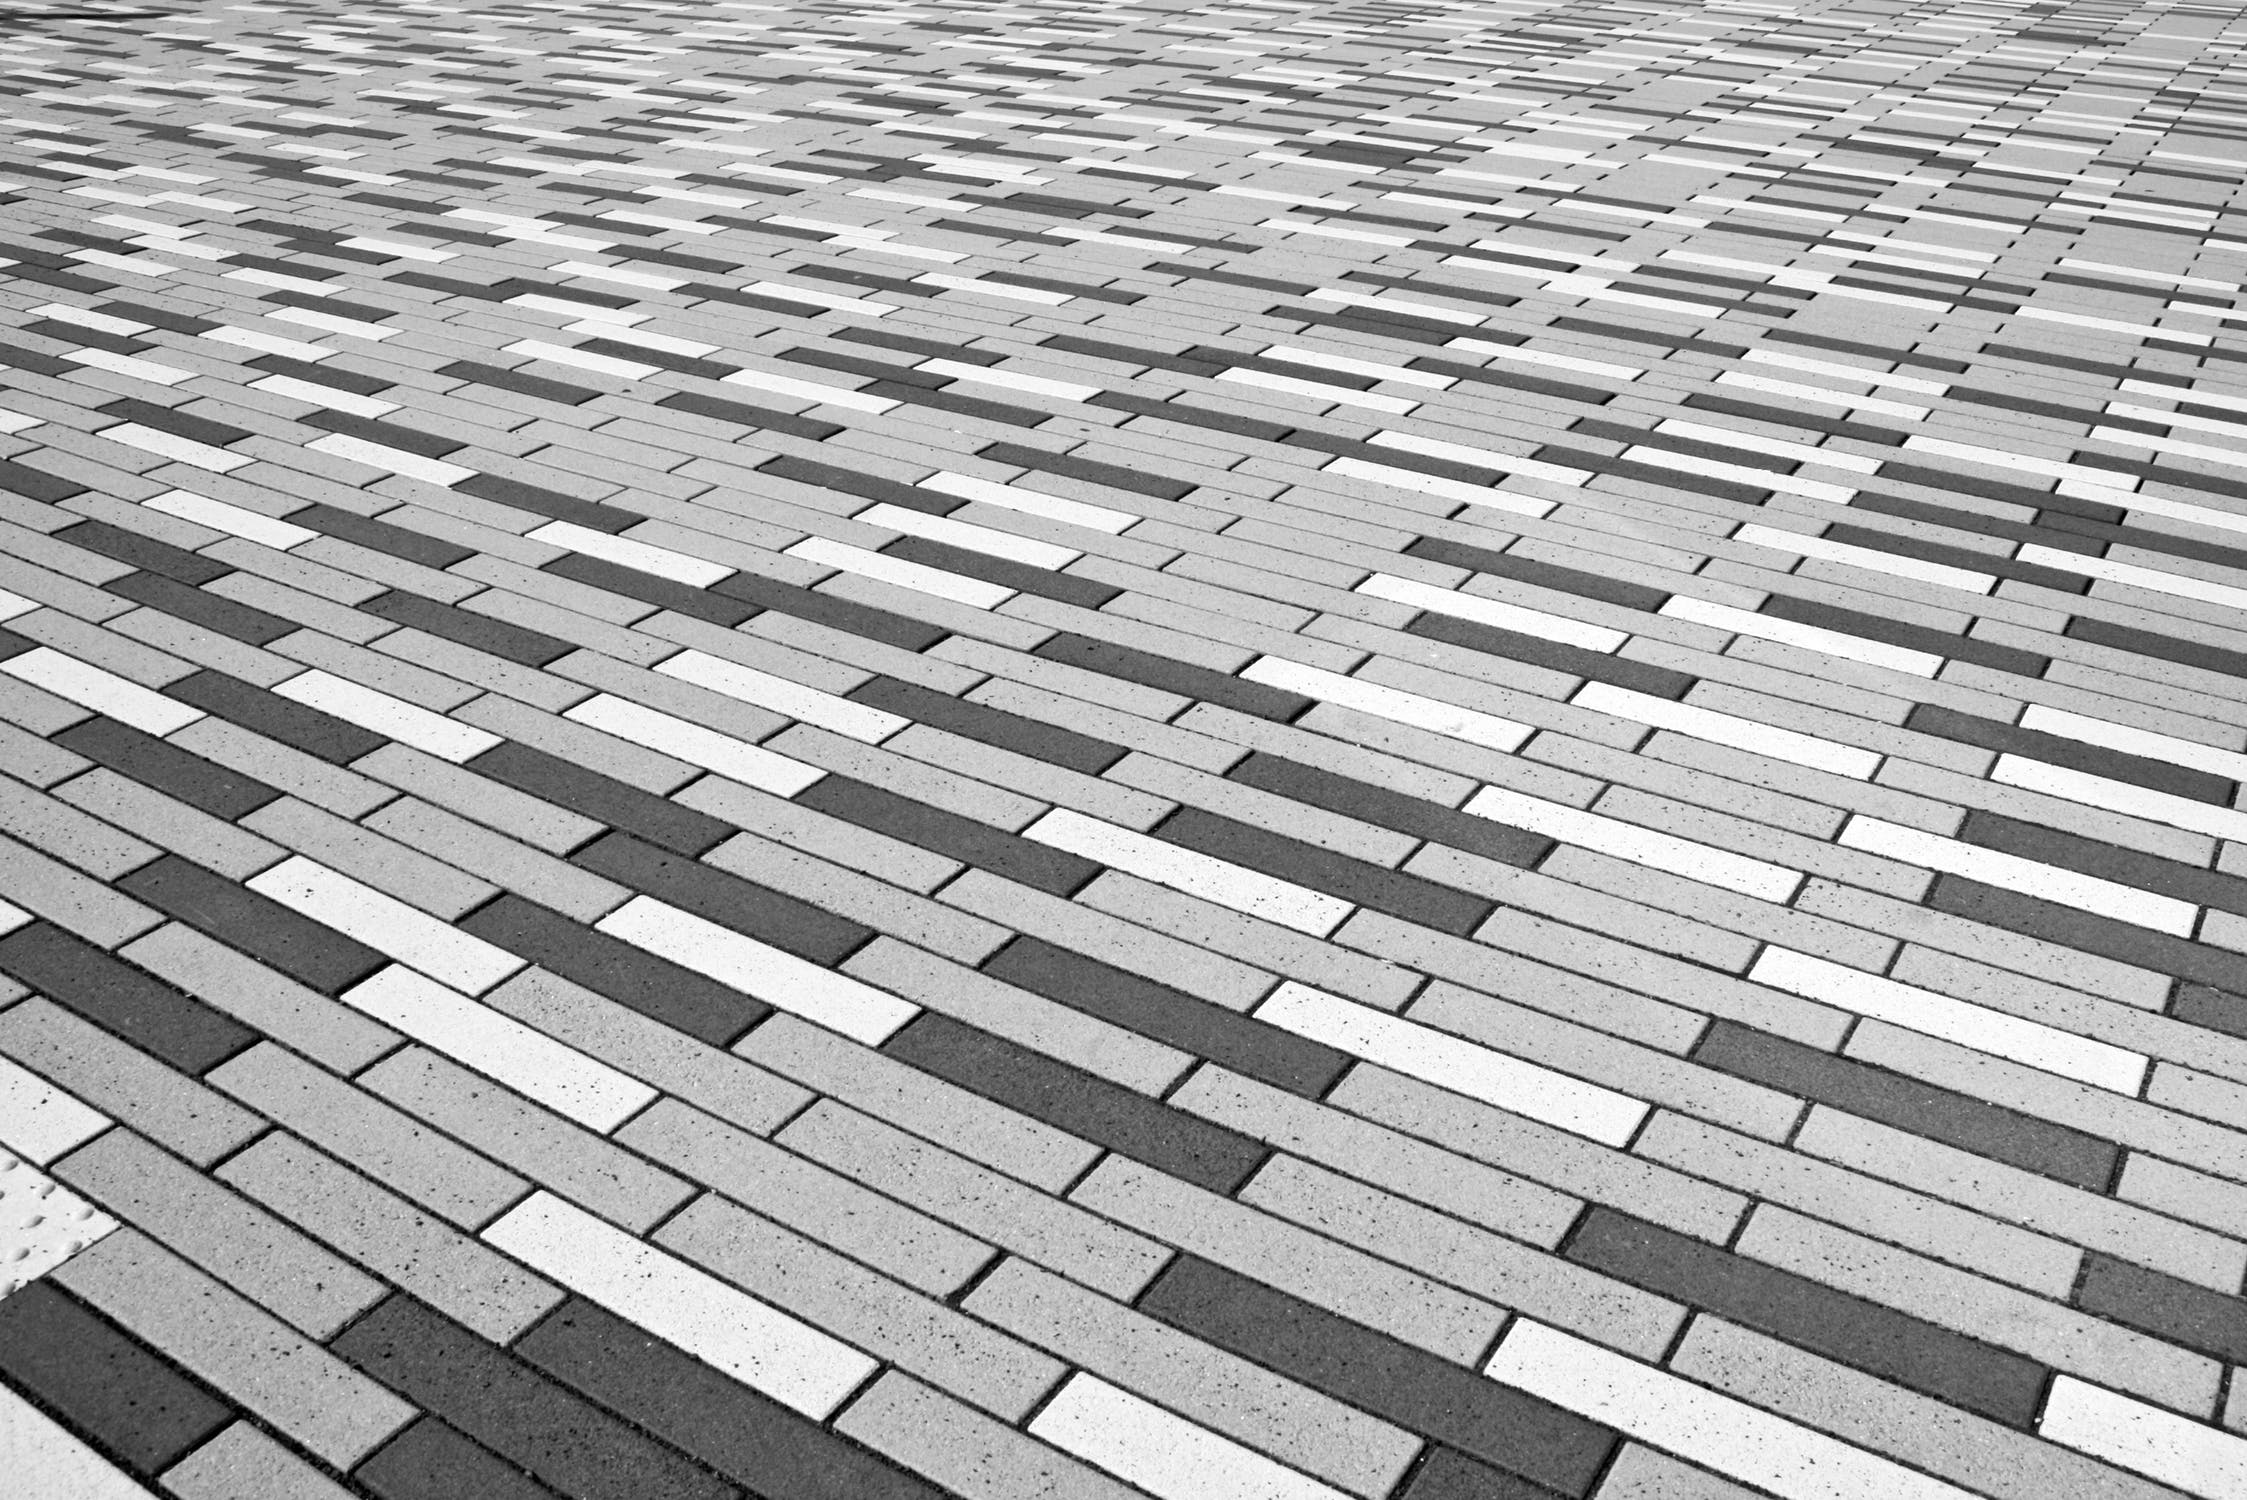 TILE FLOORING: TYPES OF MATERIALS